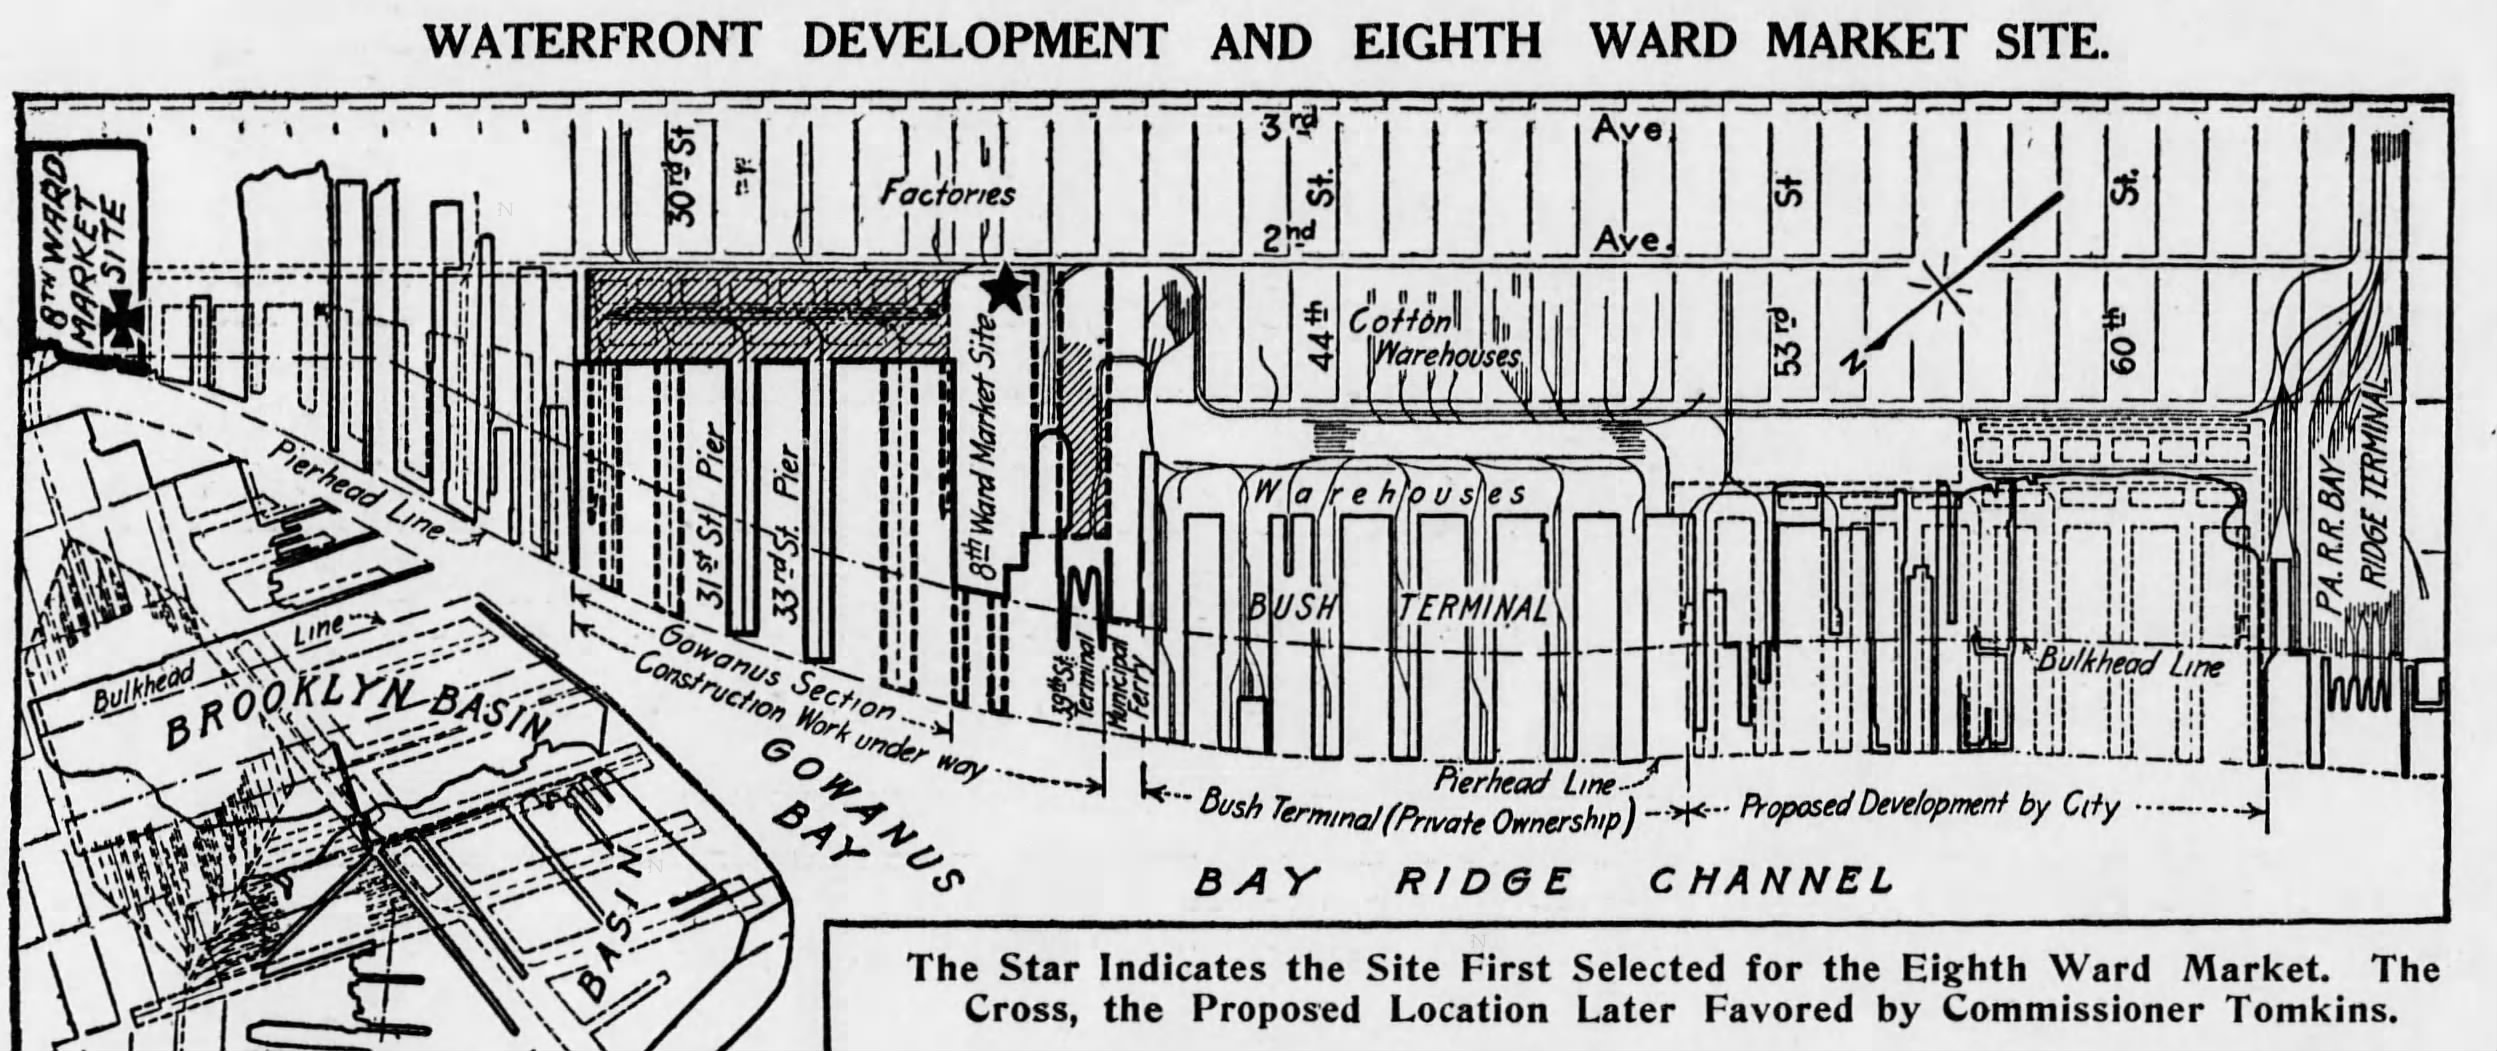 Map of Waterfront Development and Eighth Ward Market Site, both locations noted.  Brooklyn Daily Eagle , February 19, 1912.